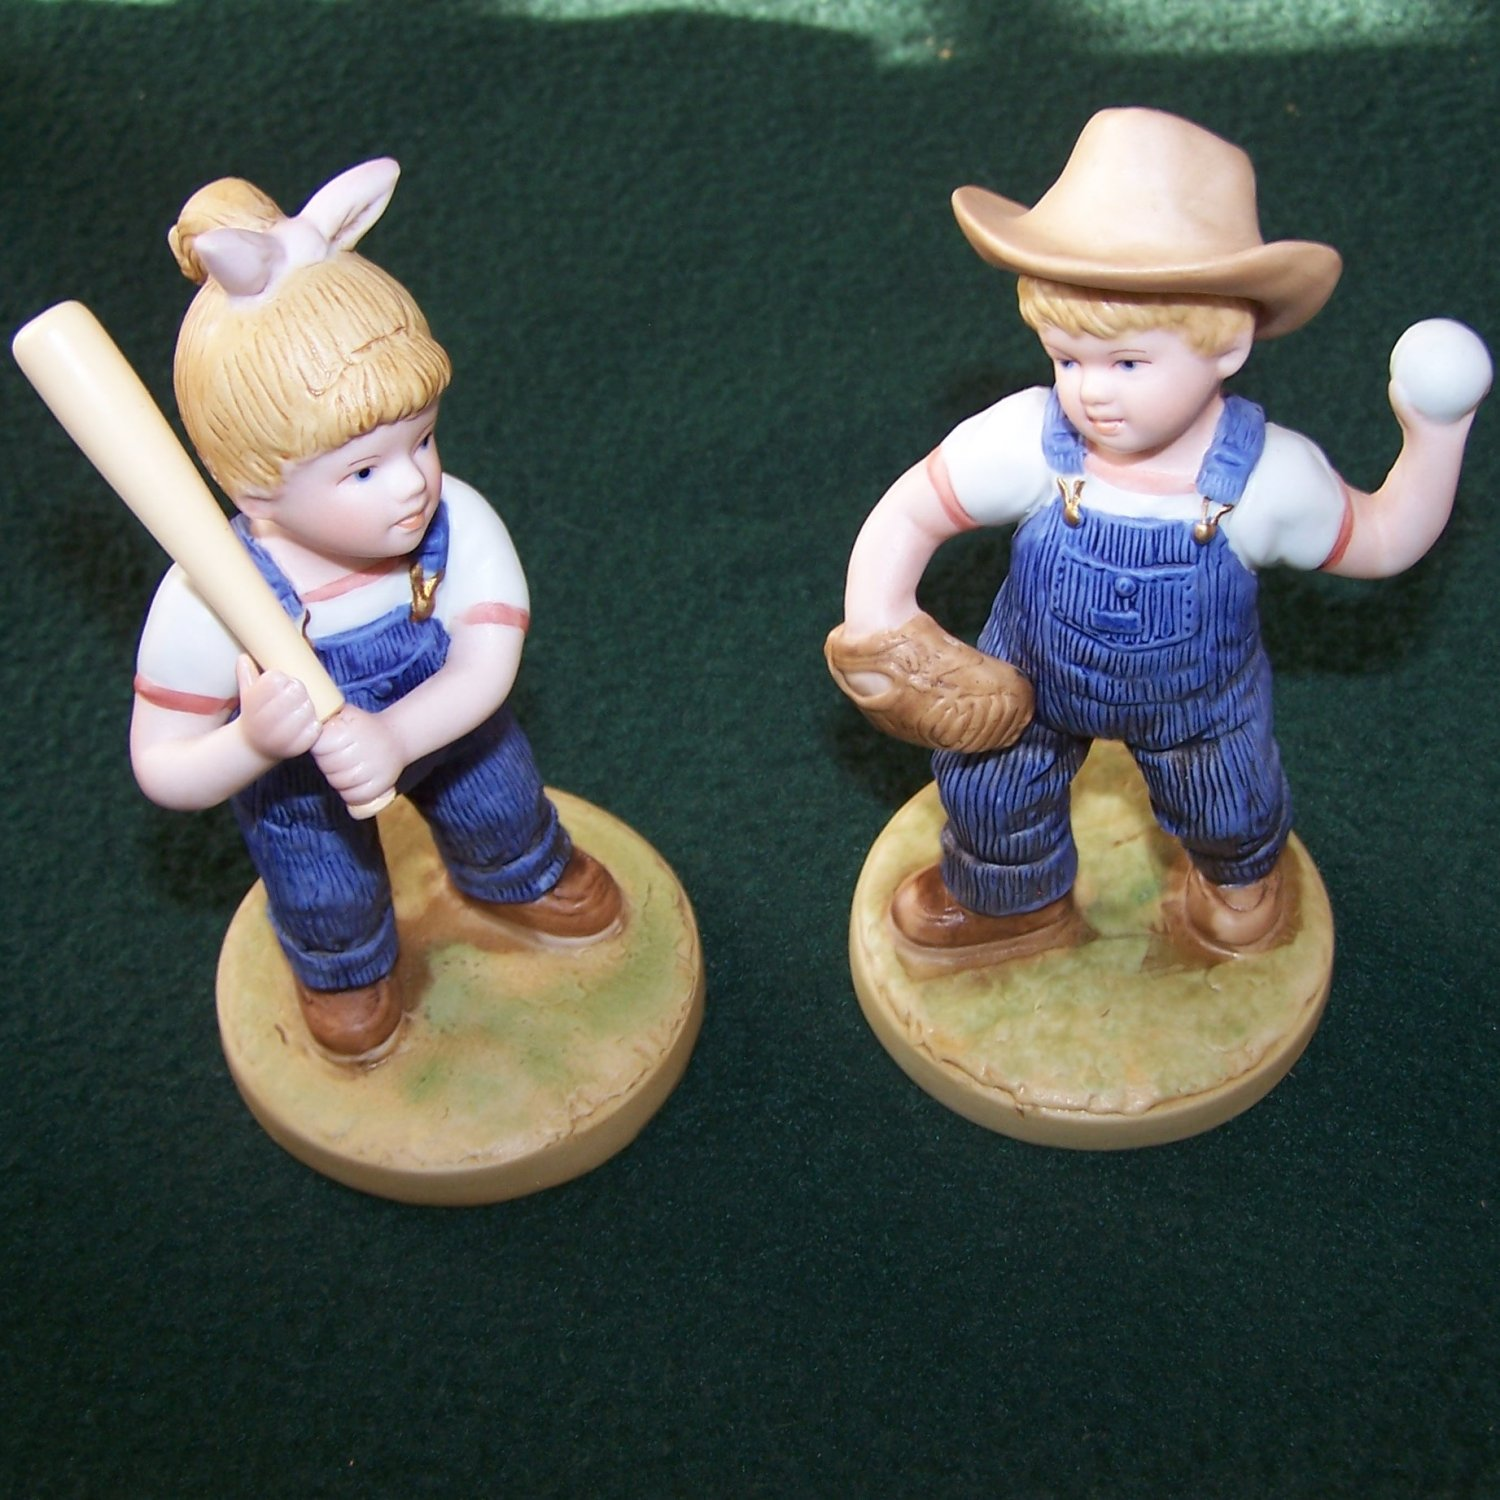 Vintage retired 1985 denim days let 39 s play ball 1522 Home interiors figurines homco